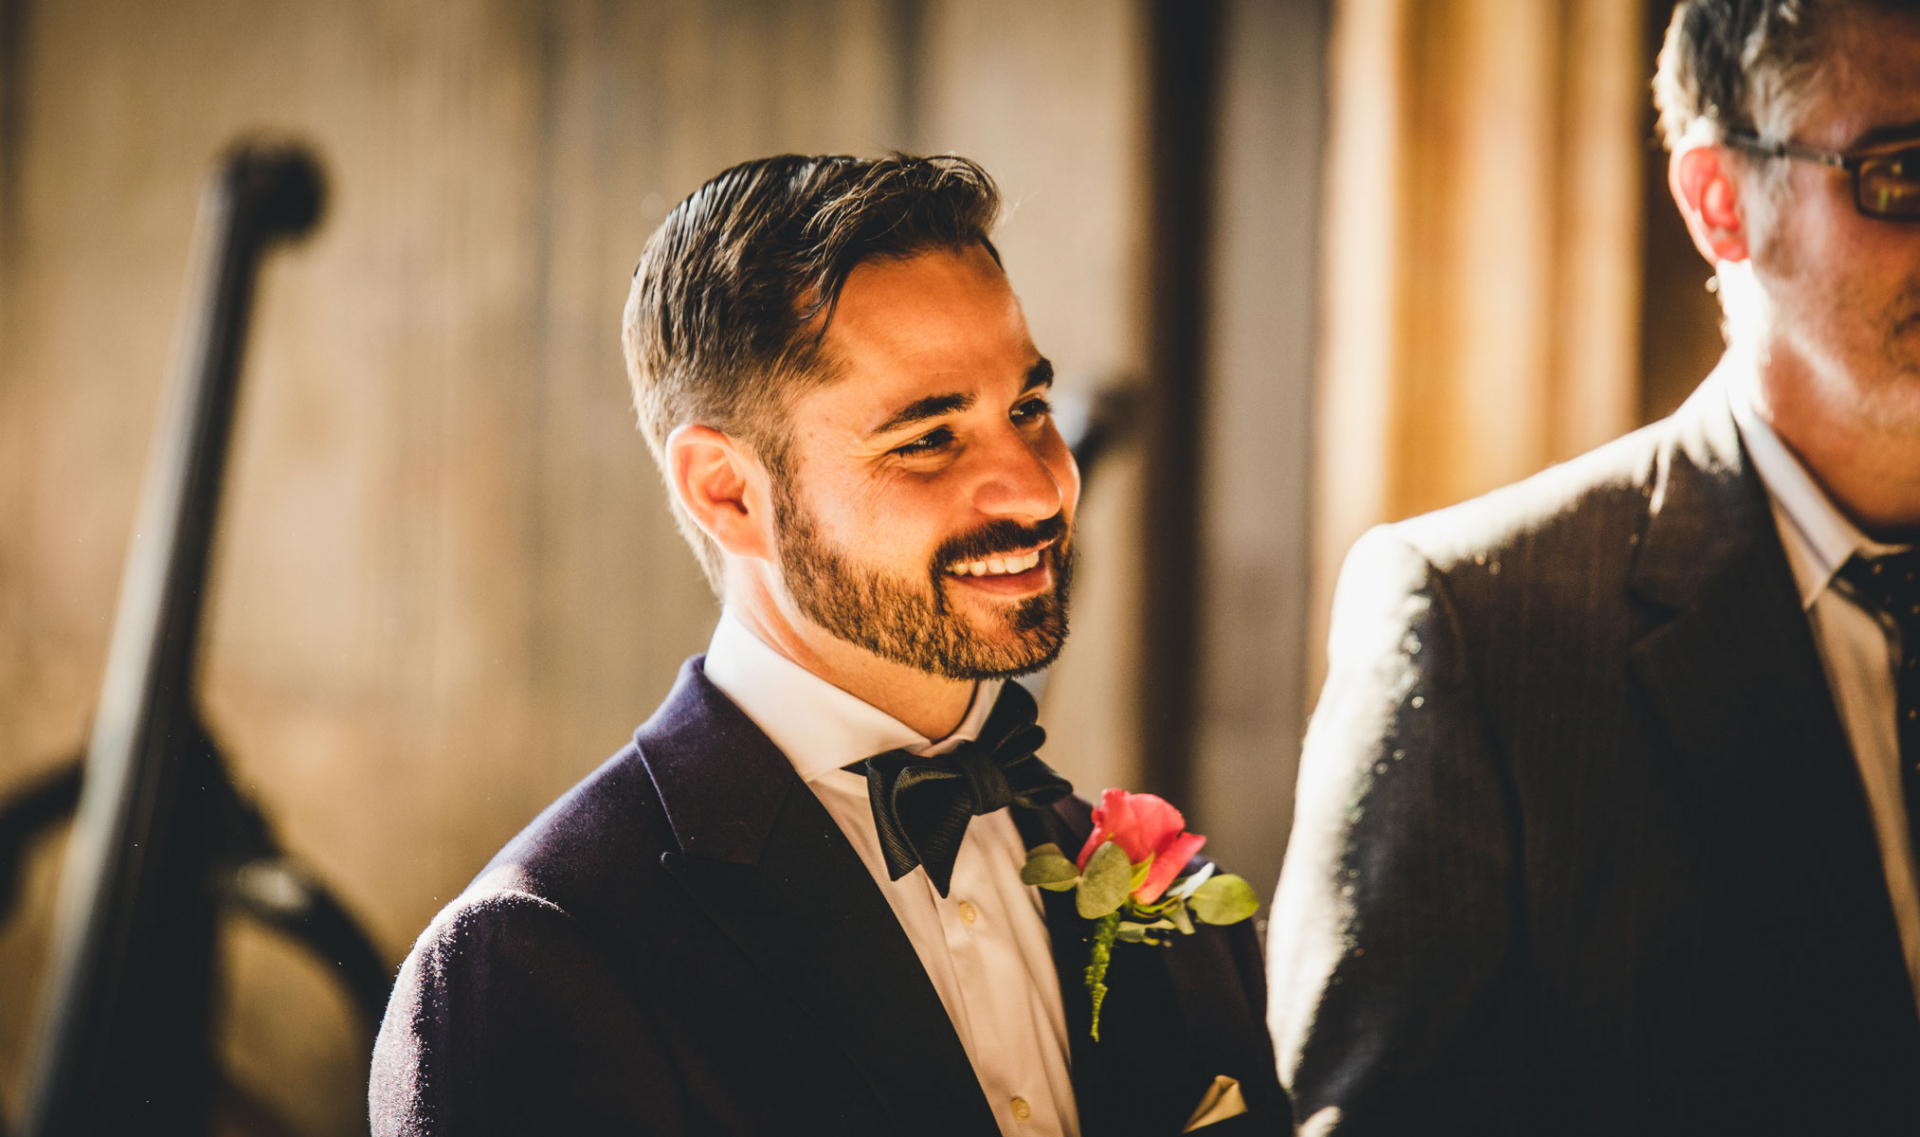 Ca Sagredo Hotel Venice, IT Wedding Photography | The groom smiles at the start of the elopement ceremony